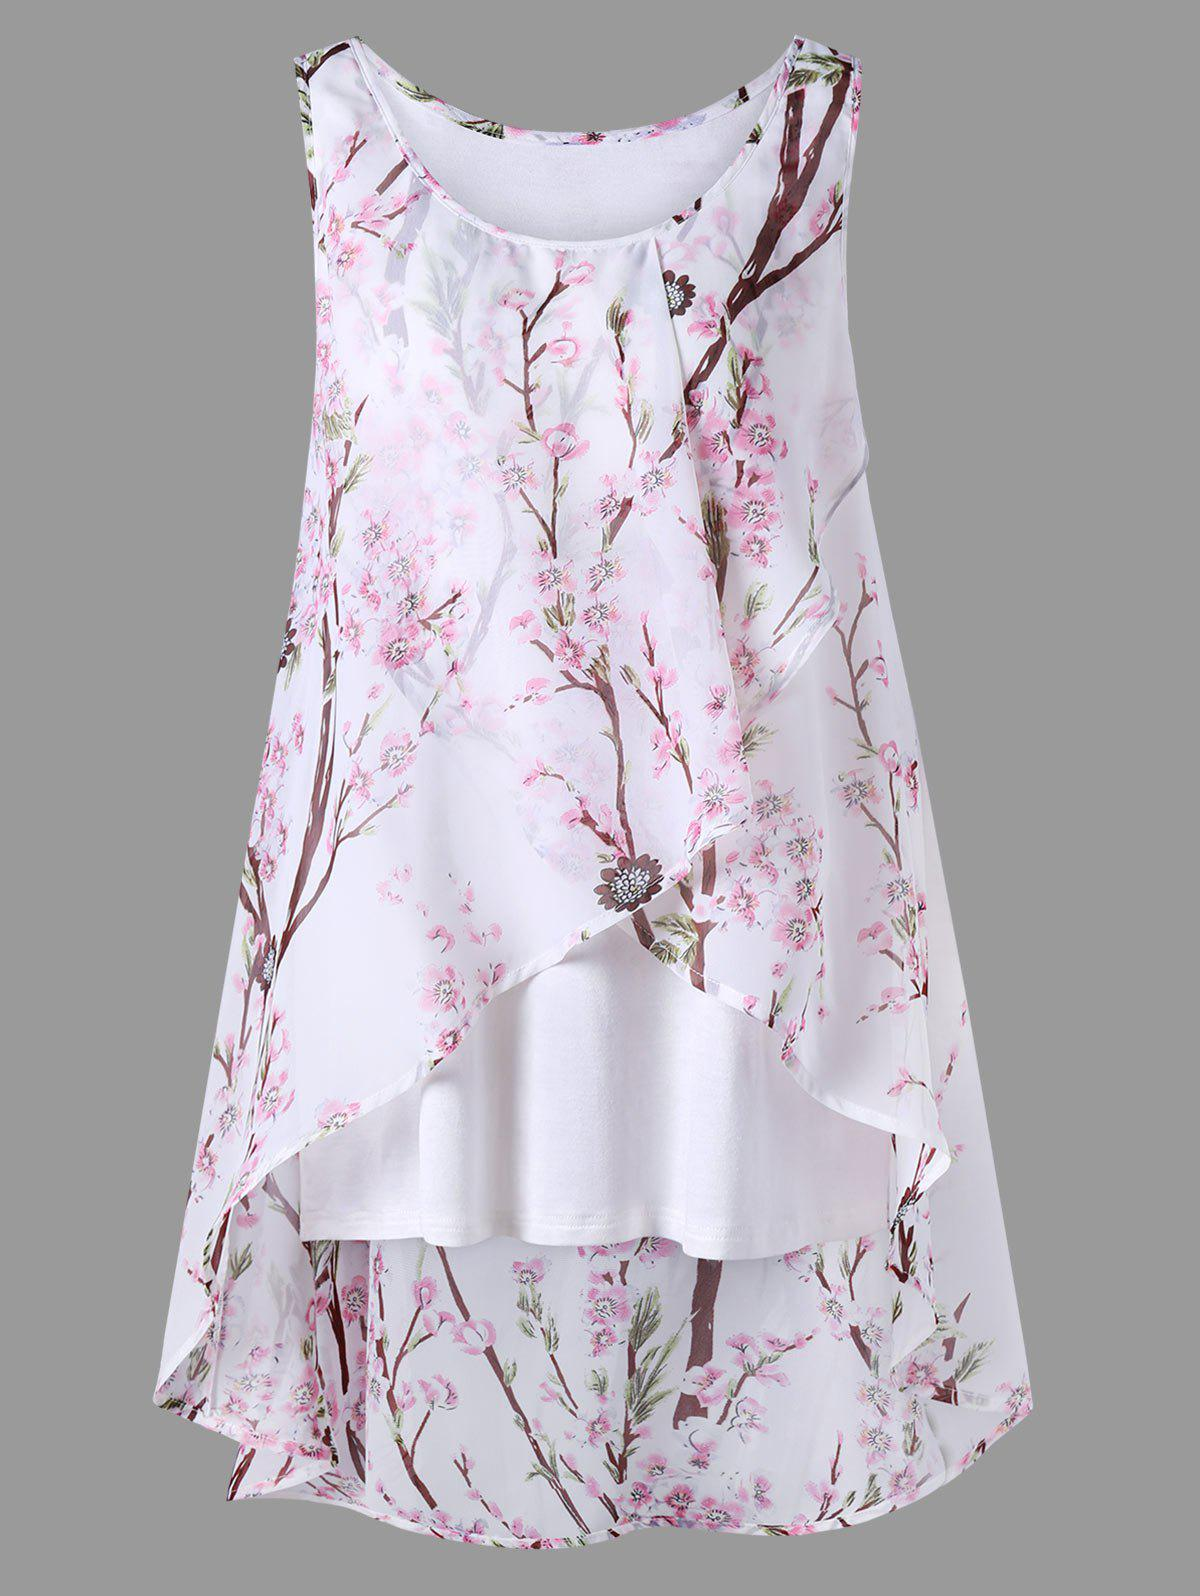 Plus Size Overlap Tiny Floral Sleeveless TopWOMEN<br><br>Size: 5XL; Color: PINK; Material: Polyester; Shirt Length: Long; Sleeve Length: Sleeveless; Collar: Scoop Neck; Style: Casual; Season: Summer; Pattern Type: Floral; Weight: 0.2700kg; Package Contents: 1 x Blouse;